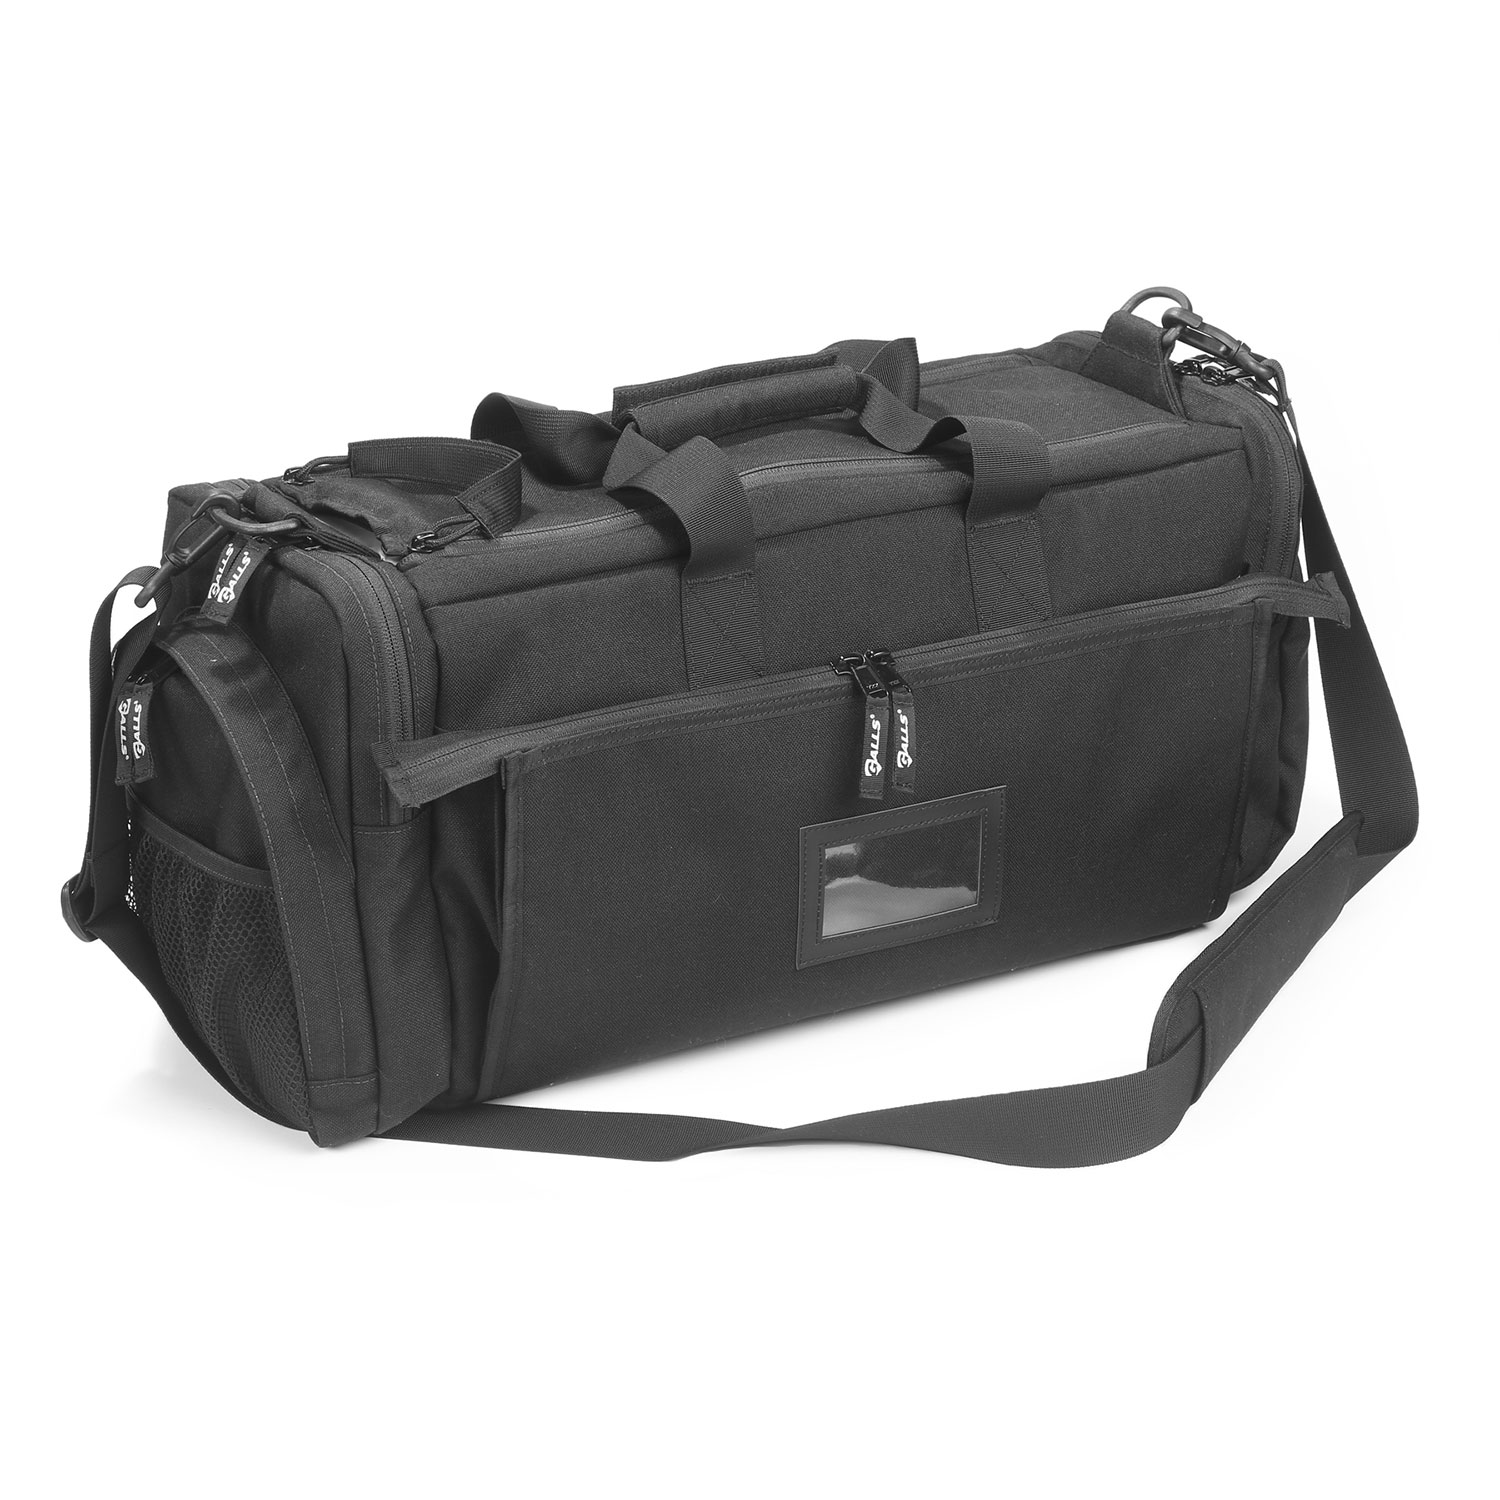 Galls Large Range Duffle Bag